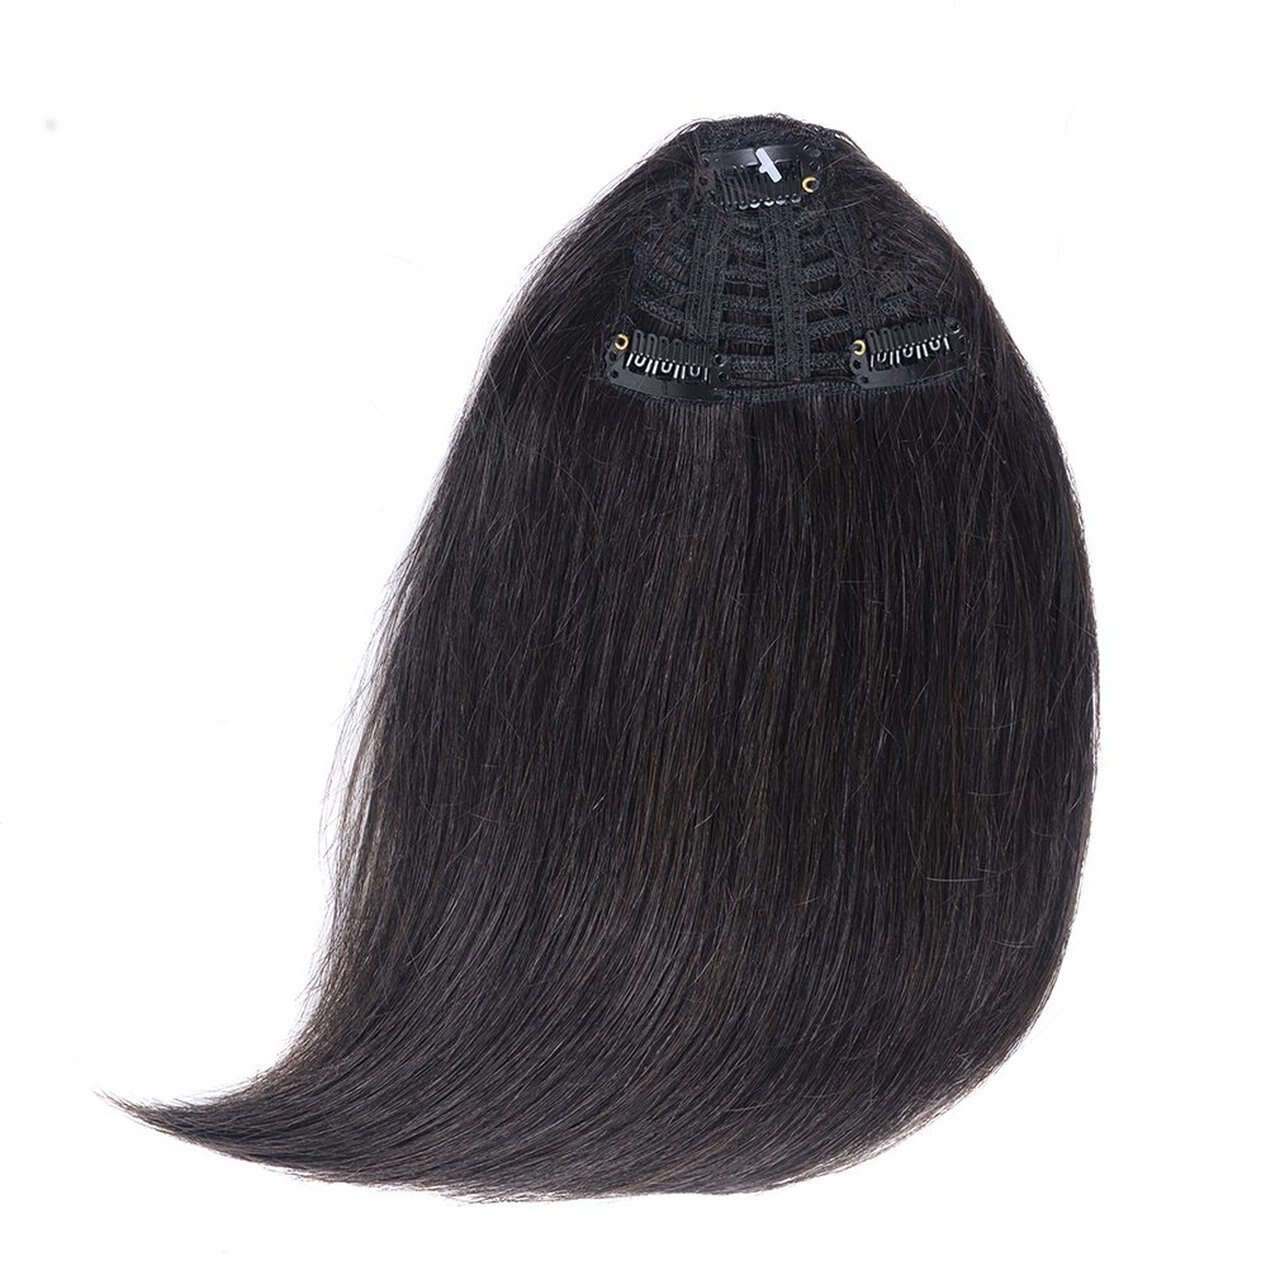 Clip In Human Hair Extensions Neat Bangs Oblique Fringe Remy Human Hairpiece 25g Or 50g 4